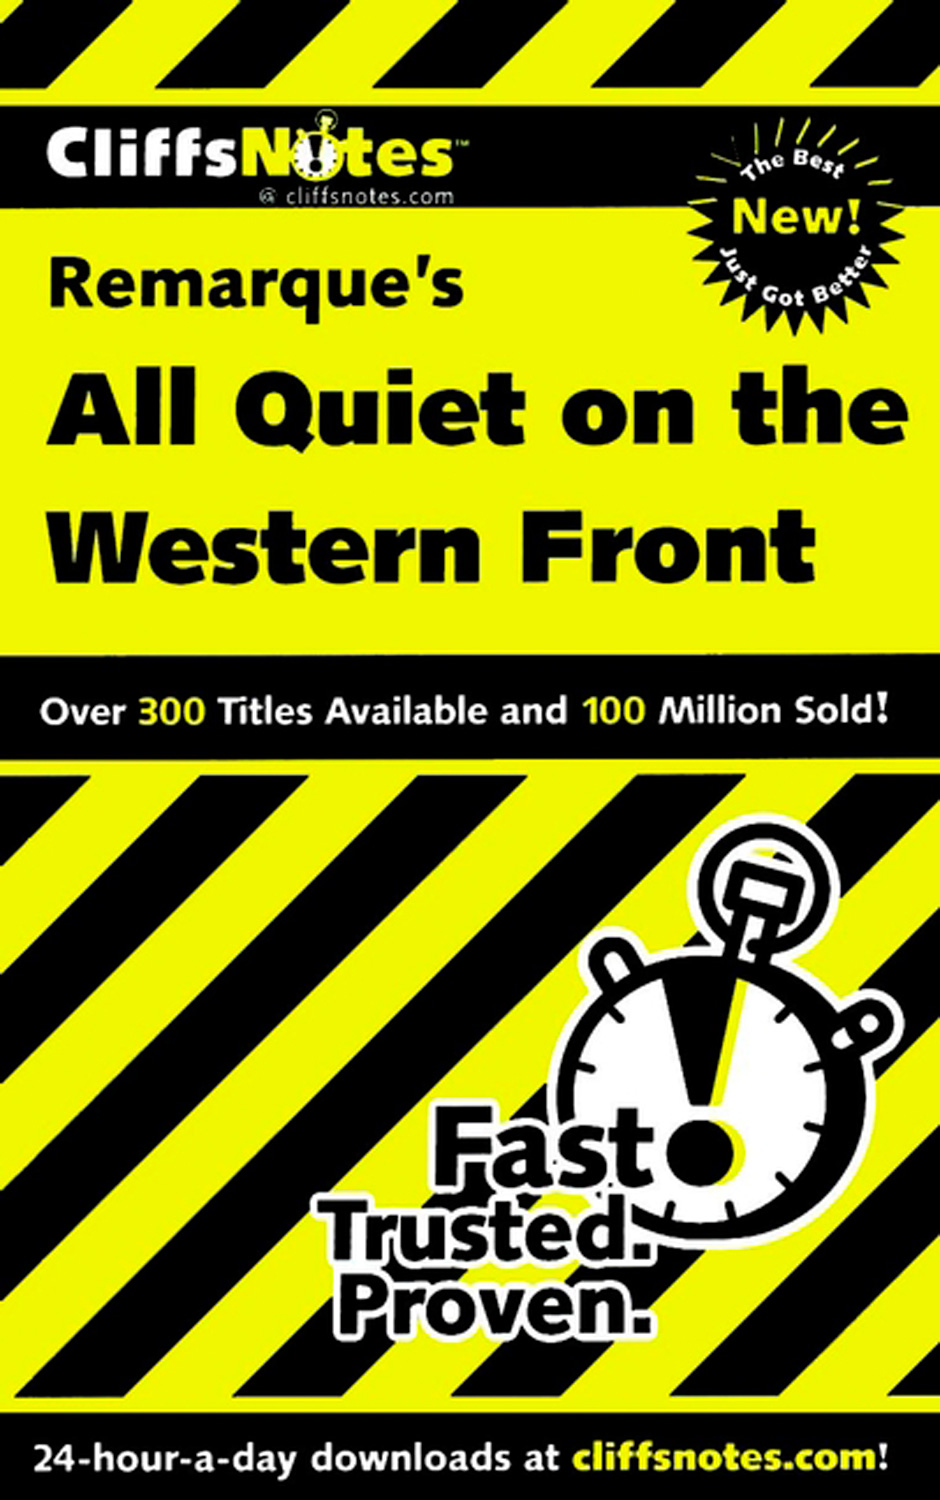 CliffsNotes on Remarque's All Quiet on the Western Front-9780764586712